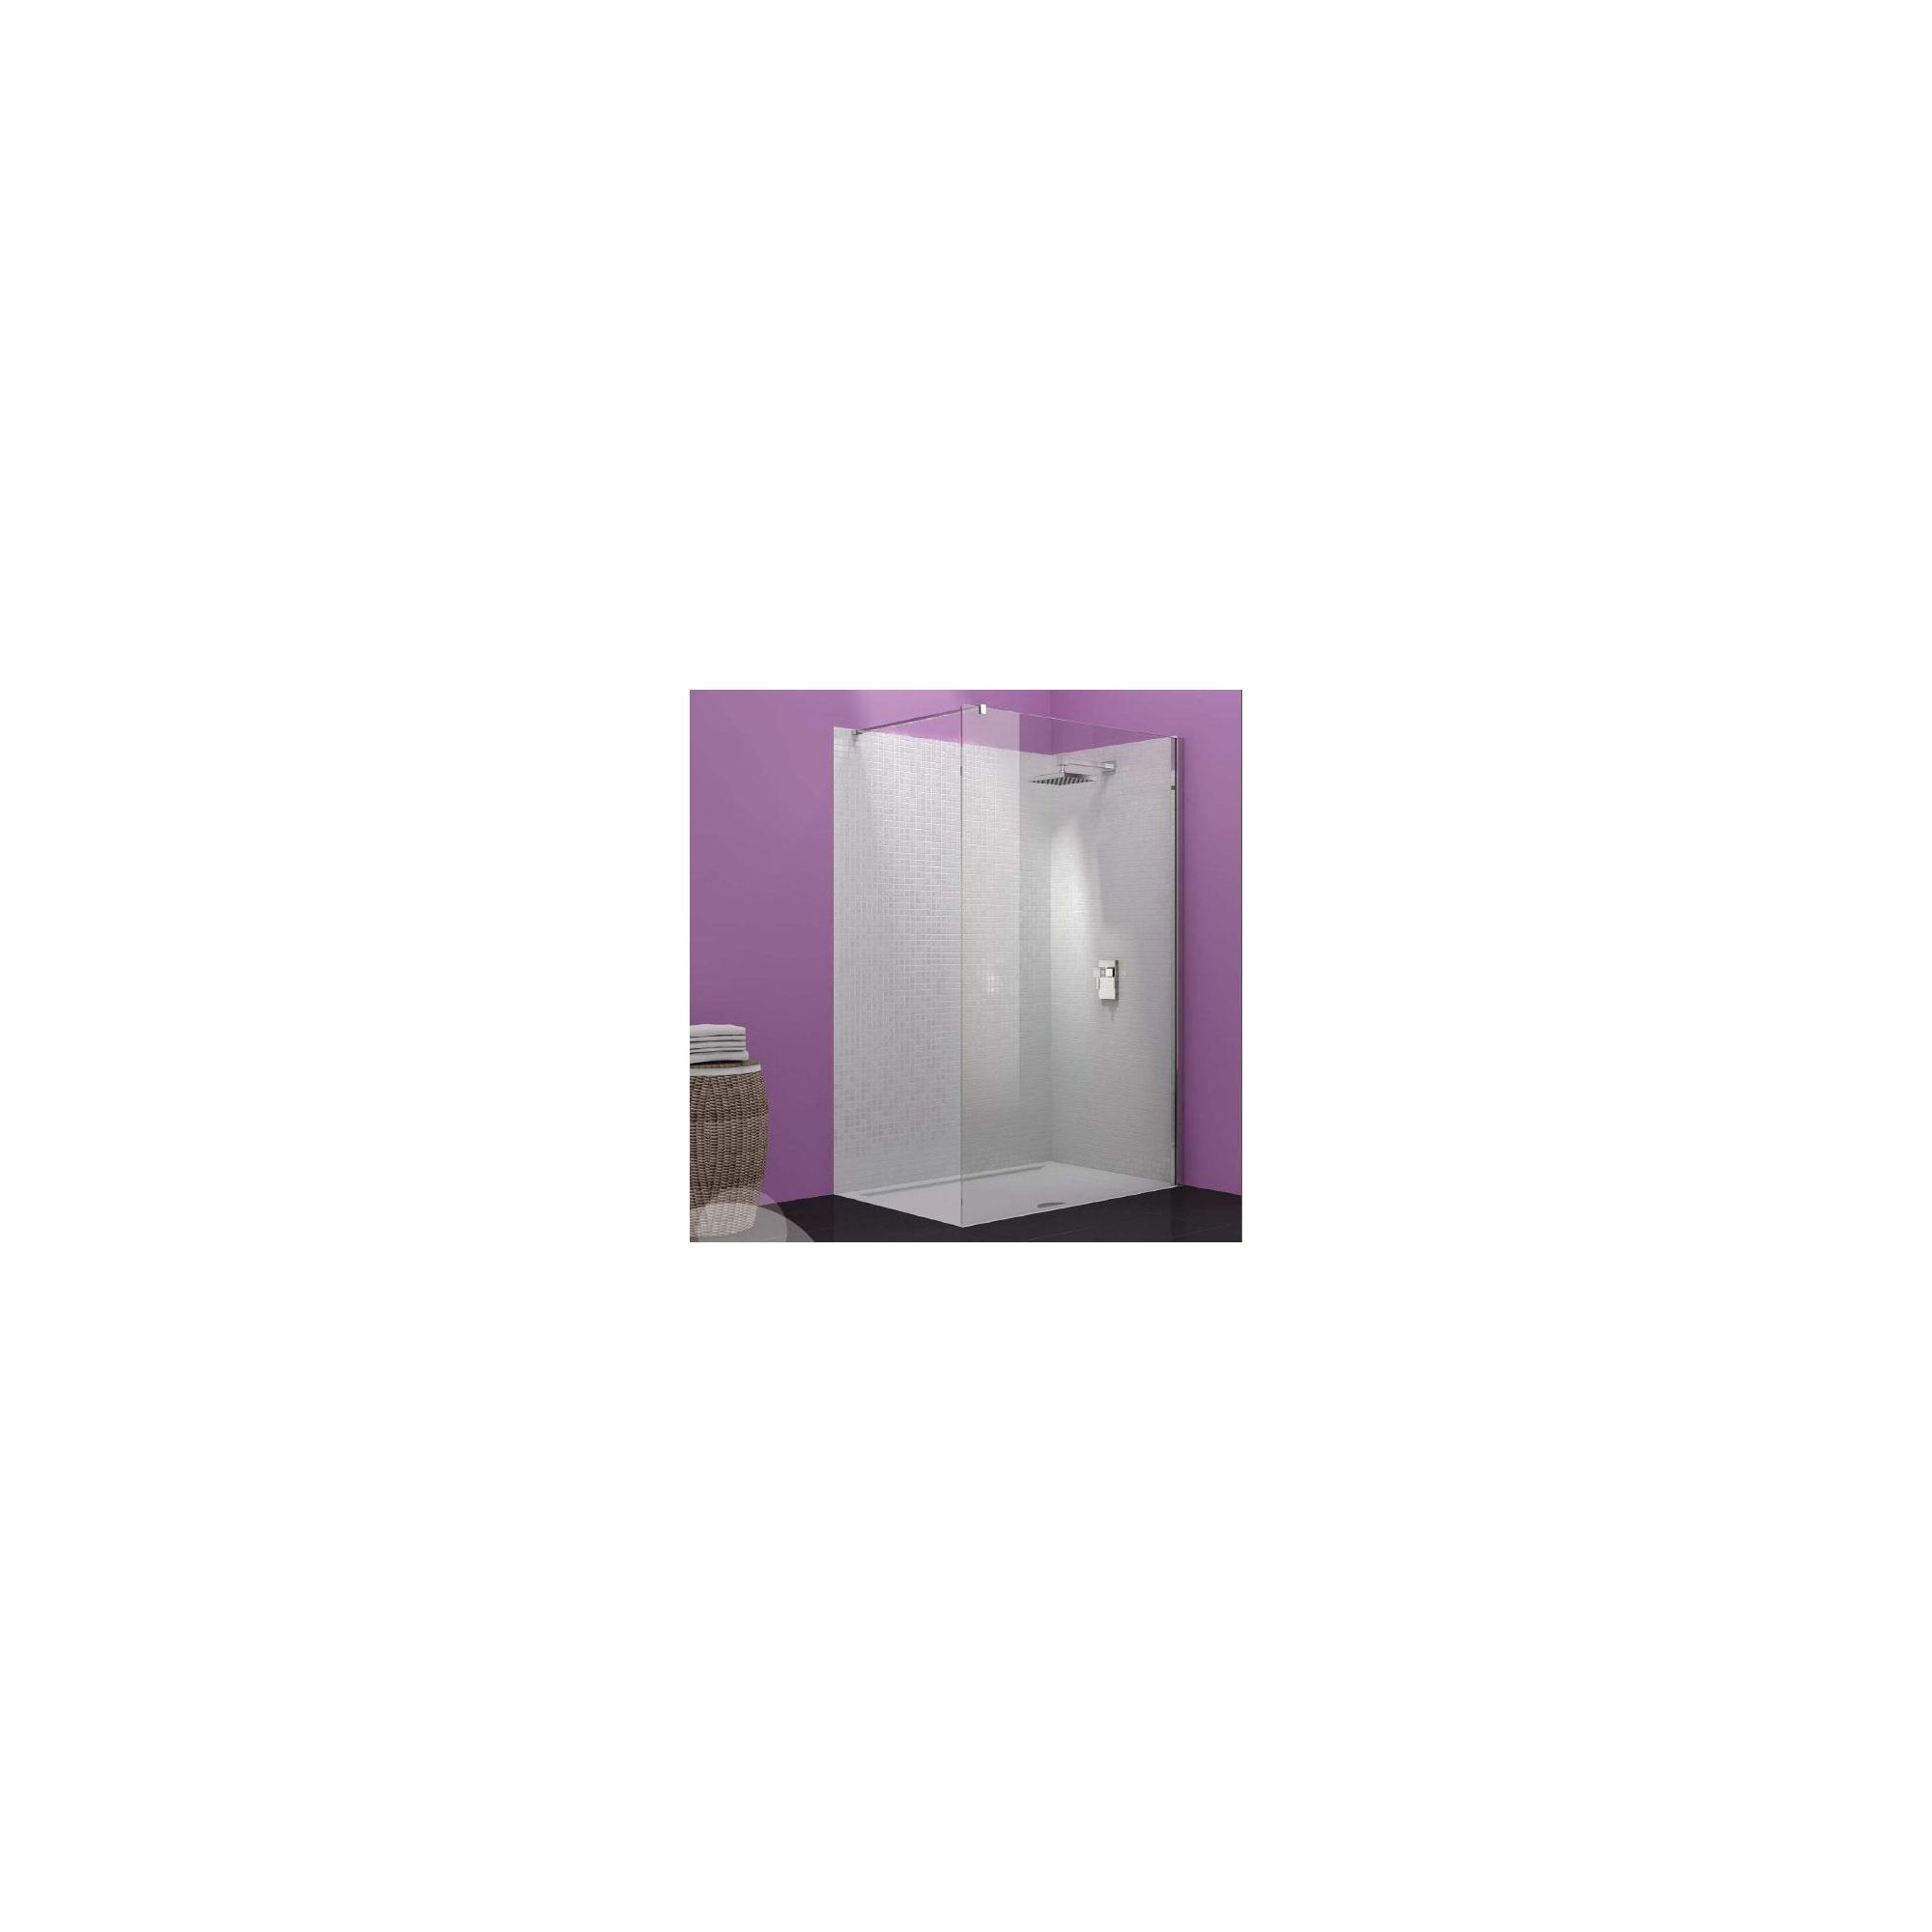 Merlyn Vivid Ten Wet Room Shower Enclosure, 900mm x 900mm, Low Profile Tray, 10mm Glass at Tesco Direct